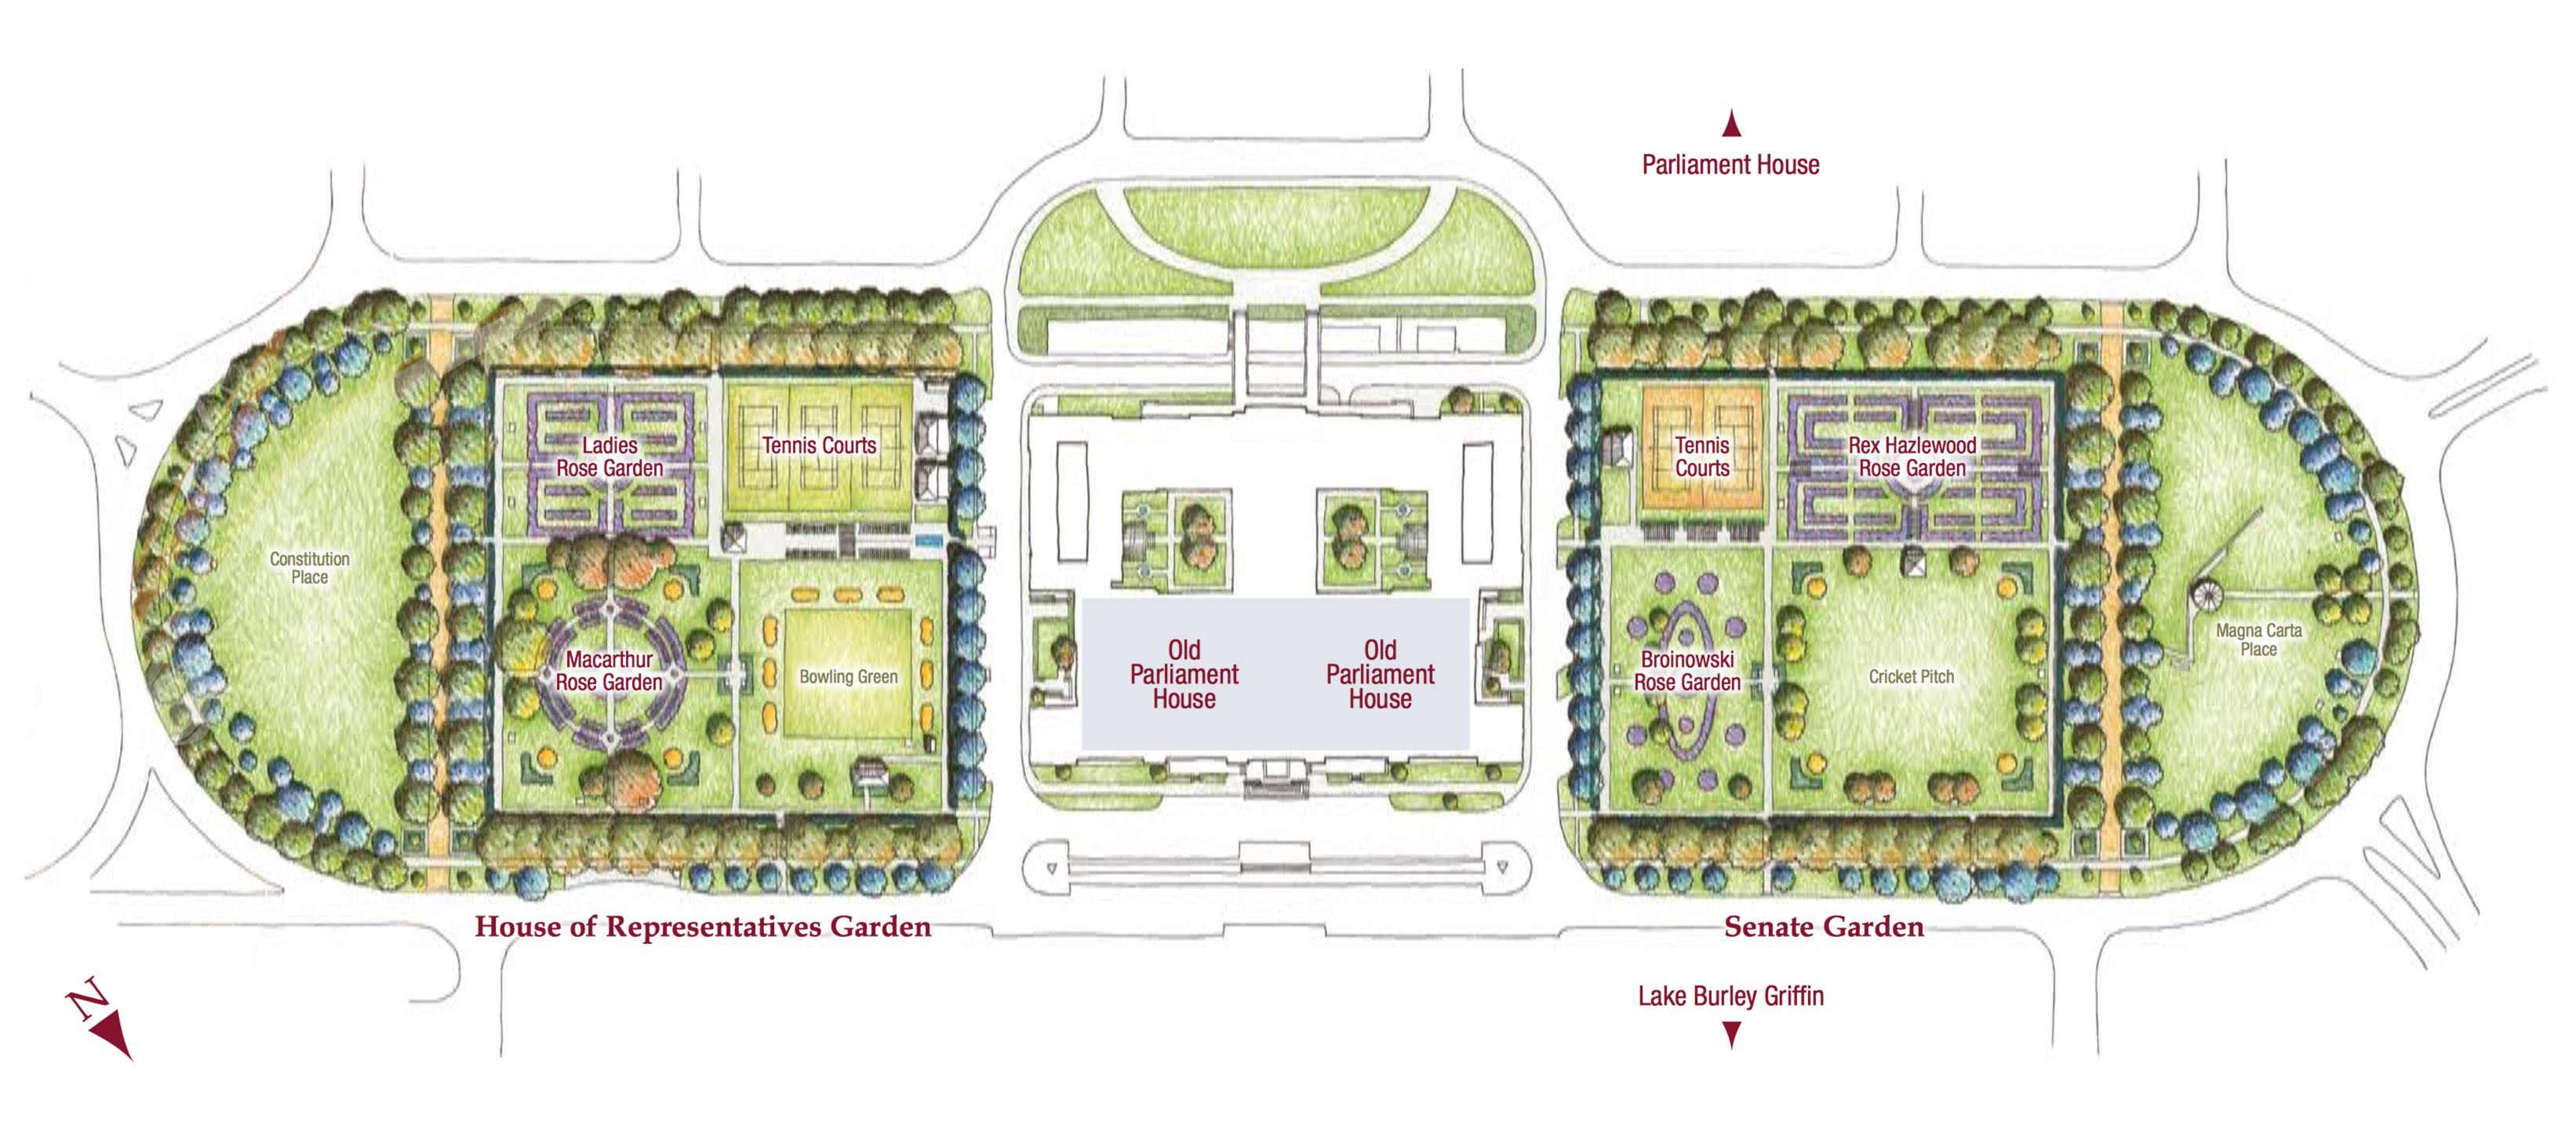 Garden design friends of old parliament house rose gardens for Garden design map